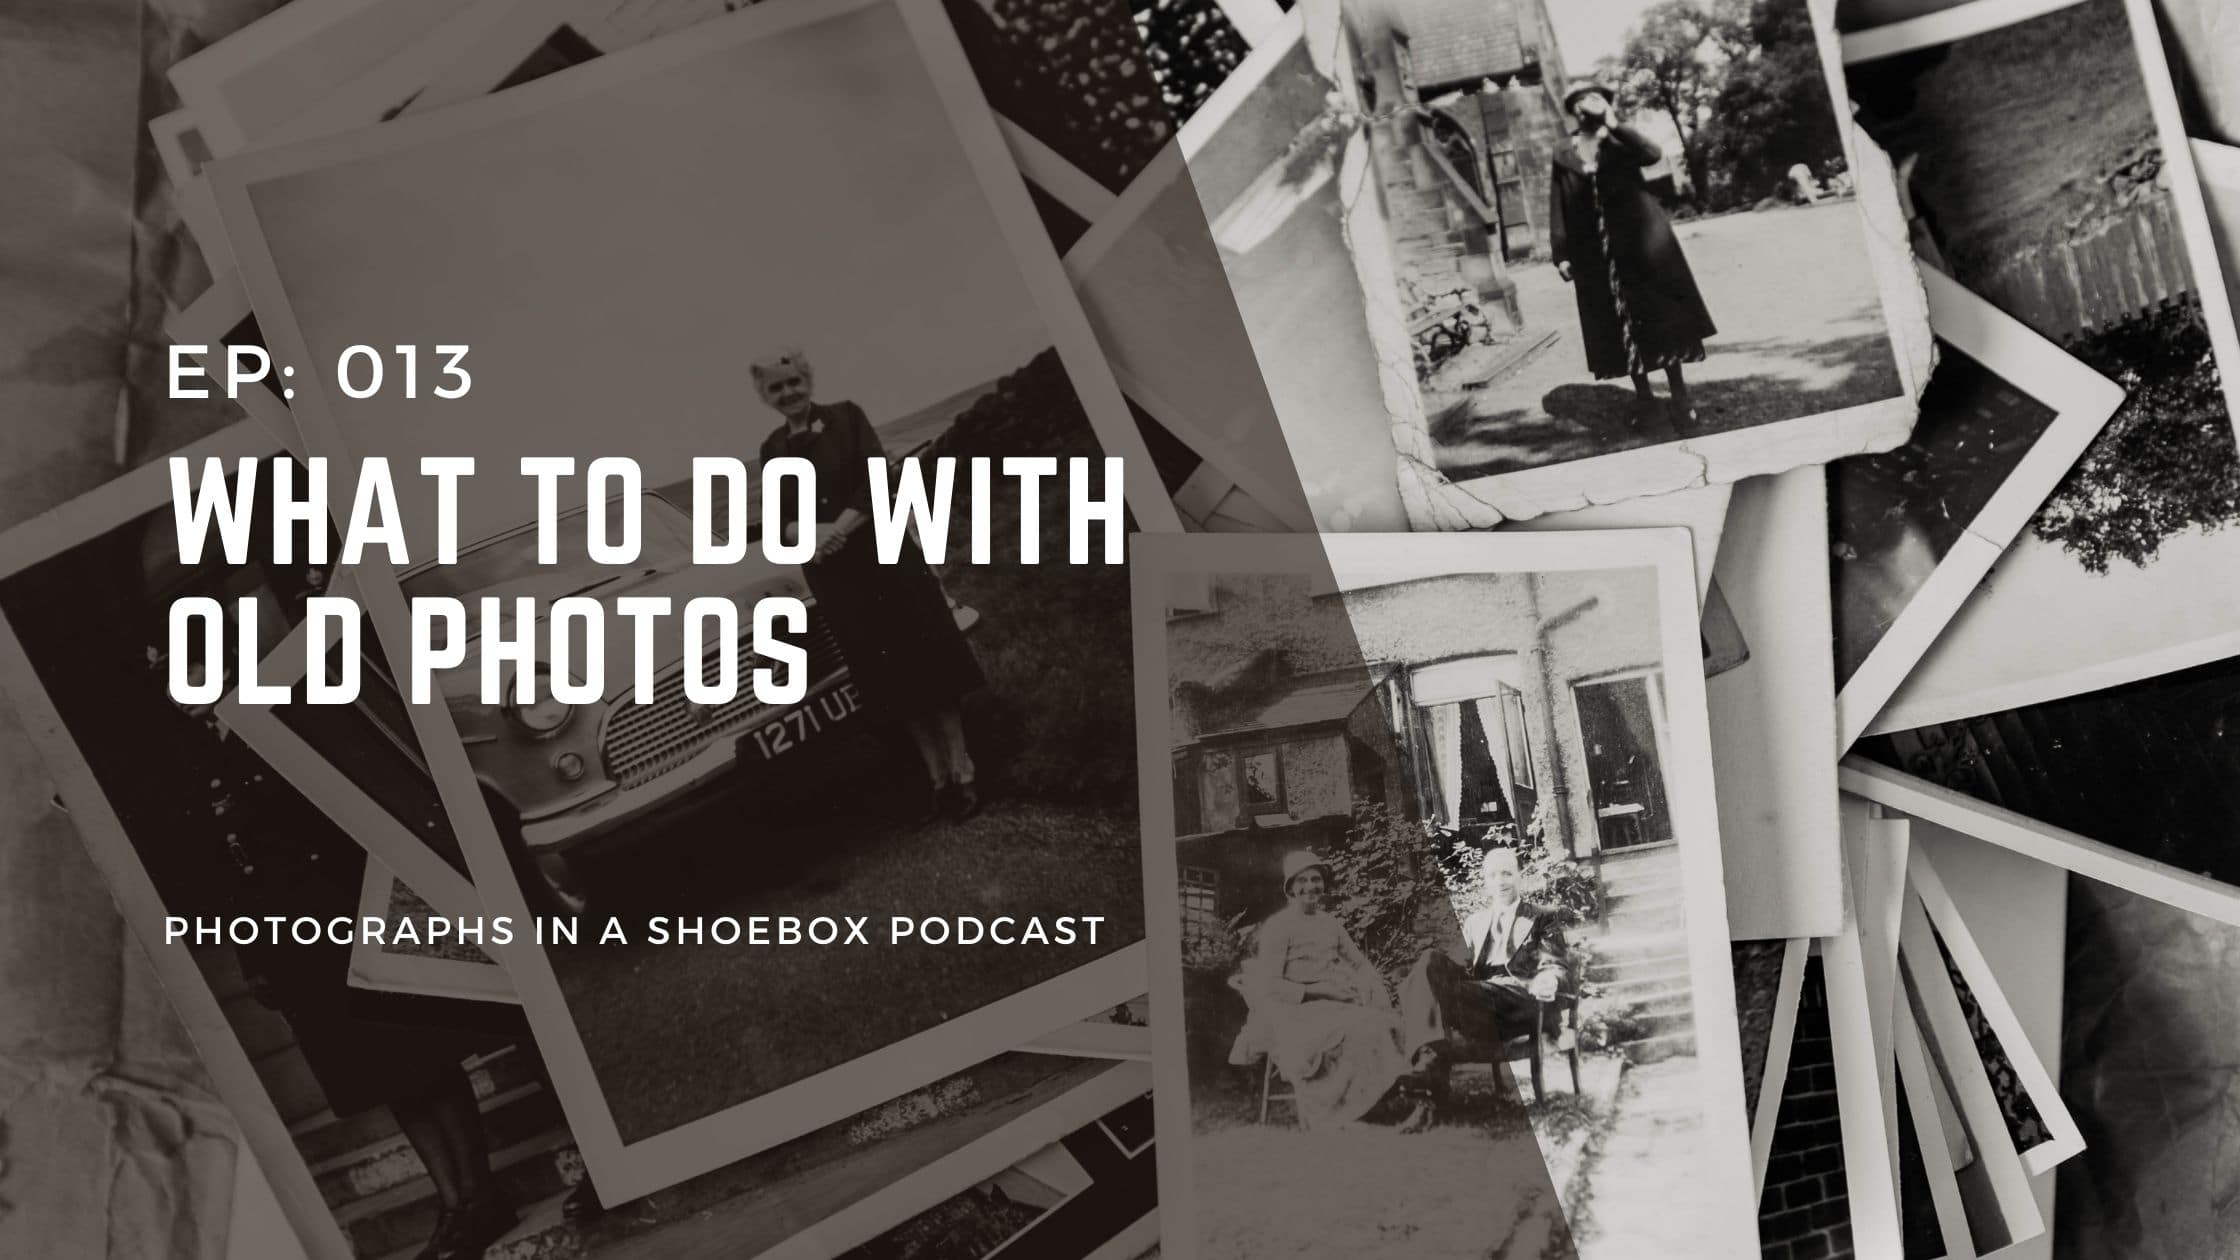 podcast title graphic: what to do with old photos